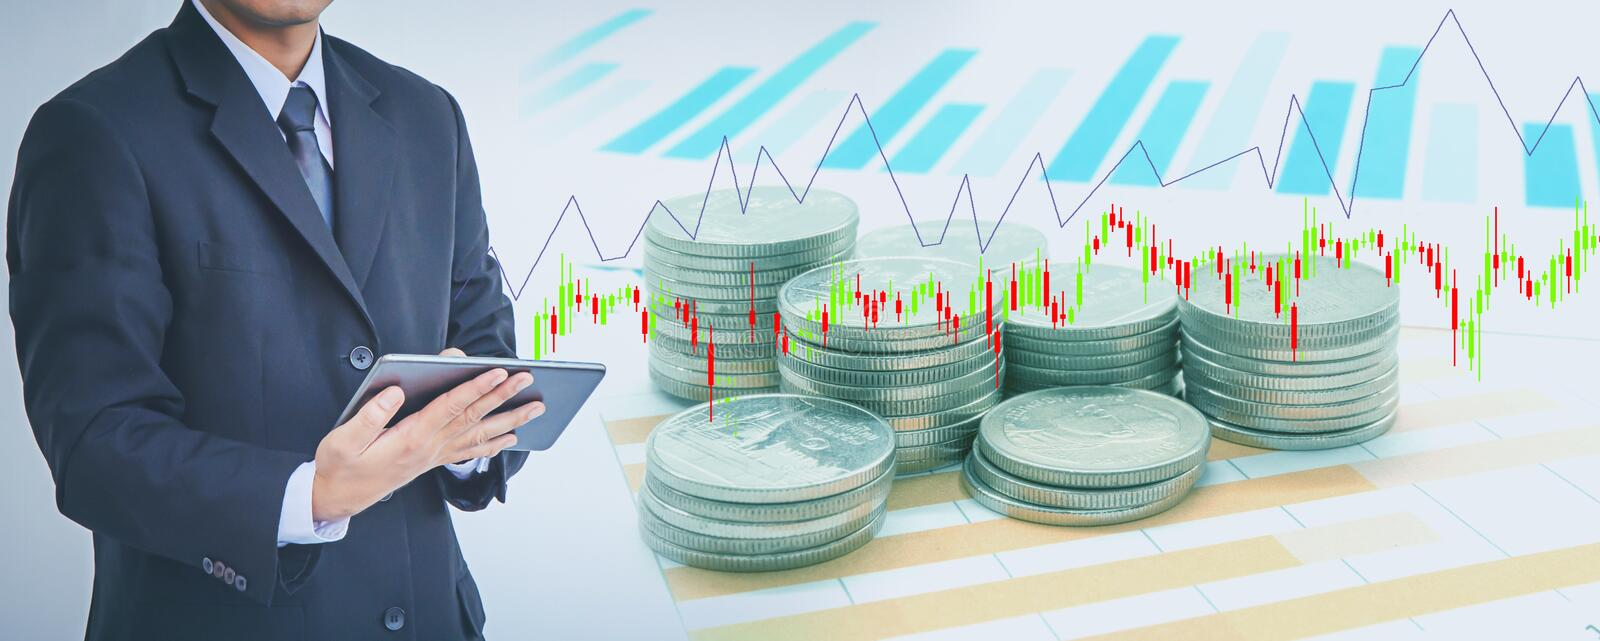 Business modern technology, finance investment concept stock image